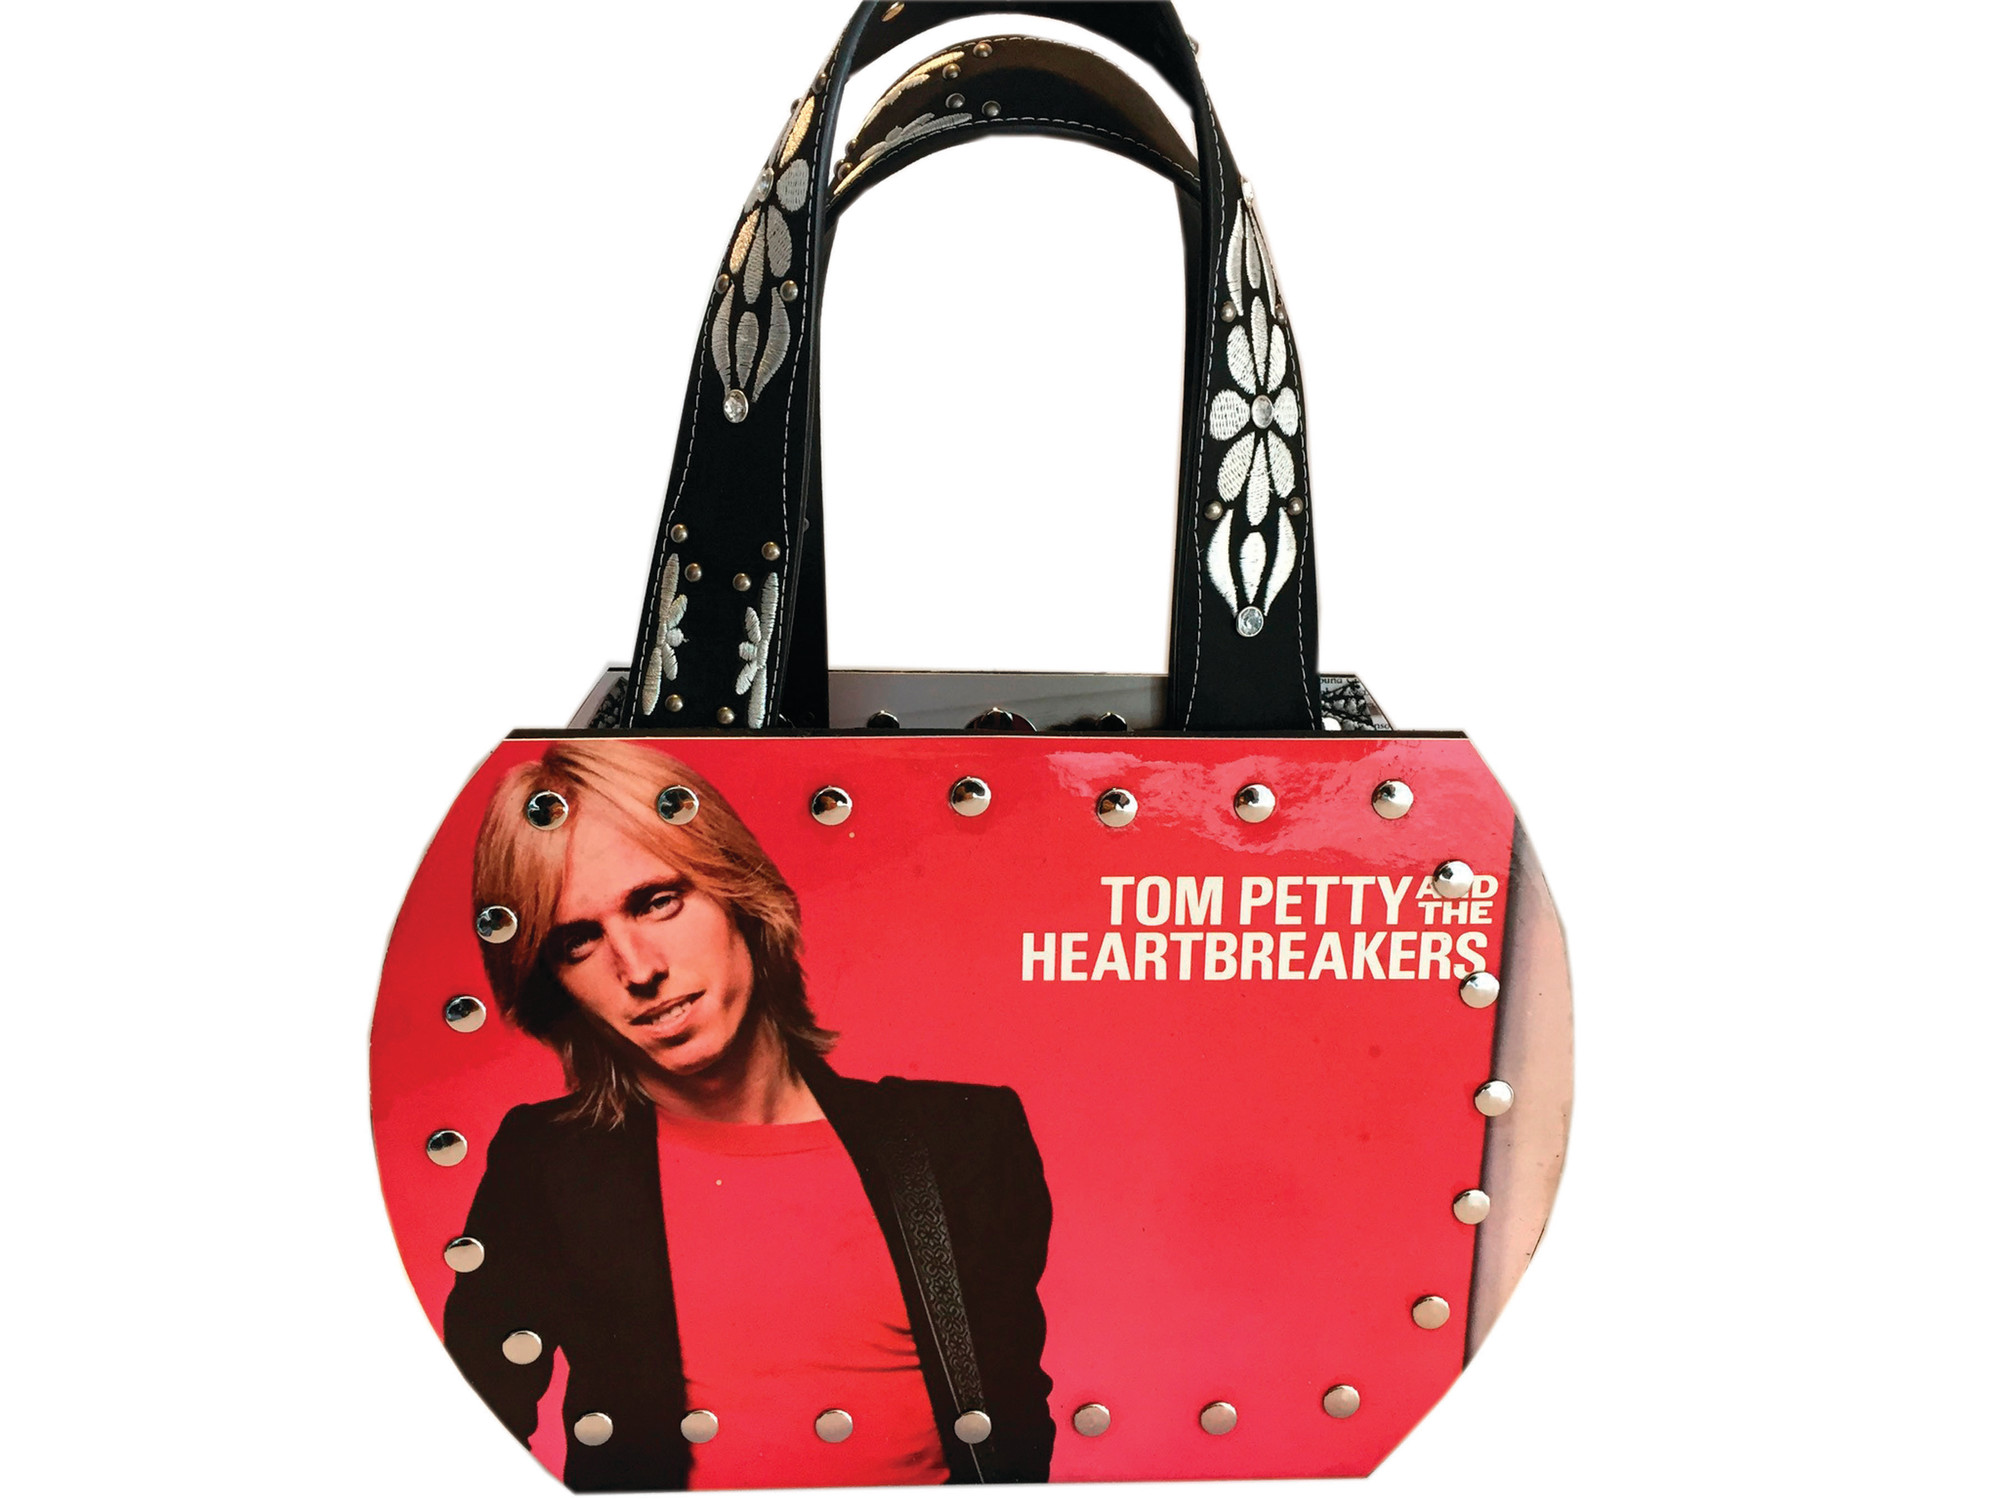 Seen is a purse made from a vinyl record and its album cover by Jennifer Wozniak.